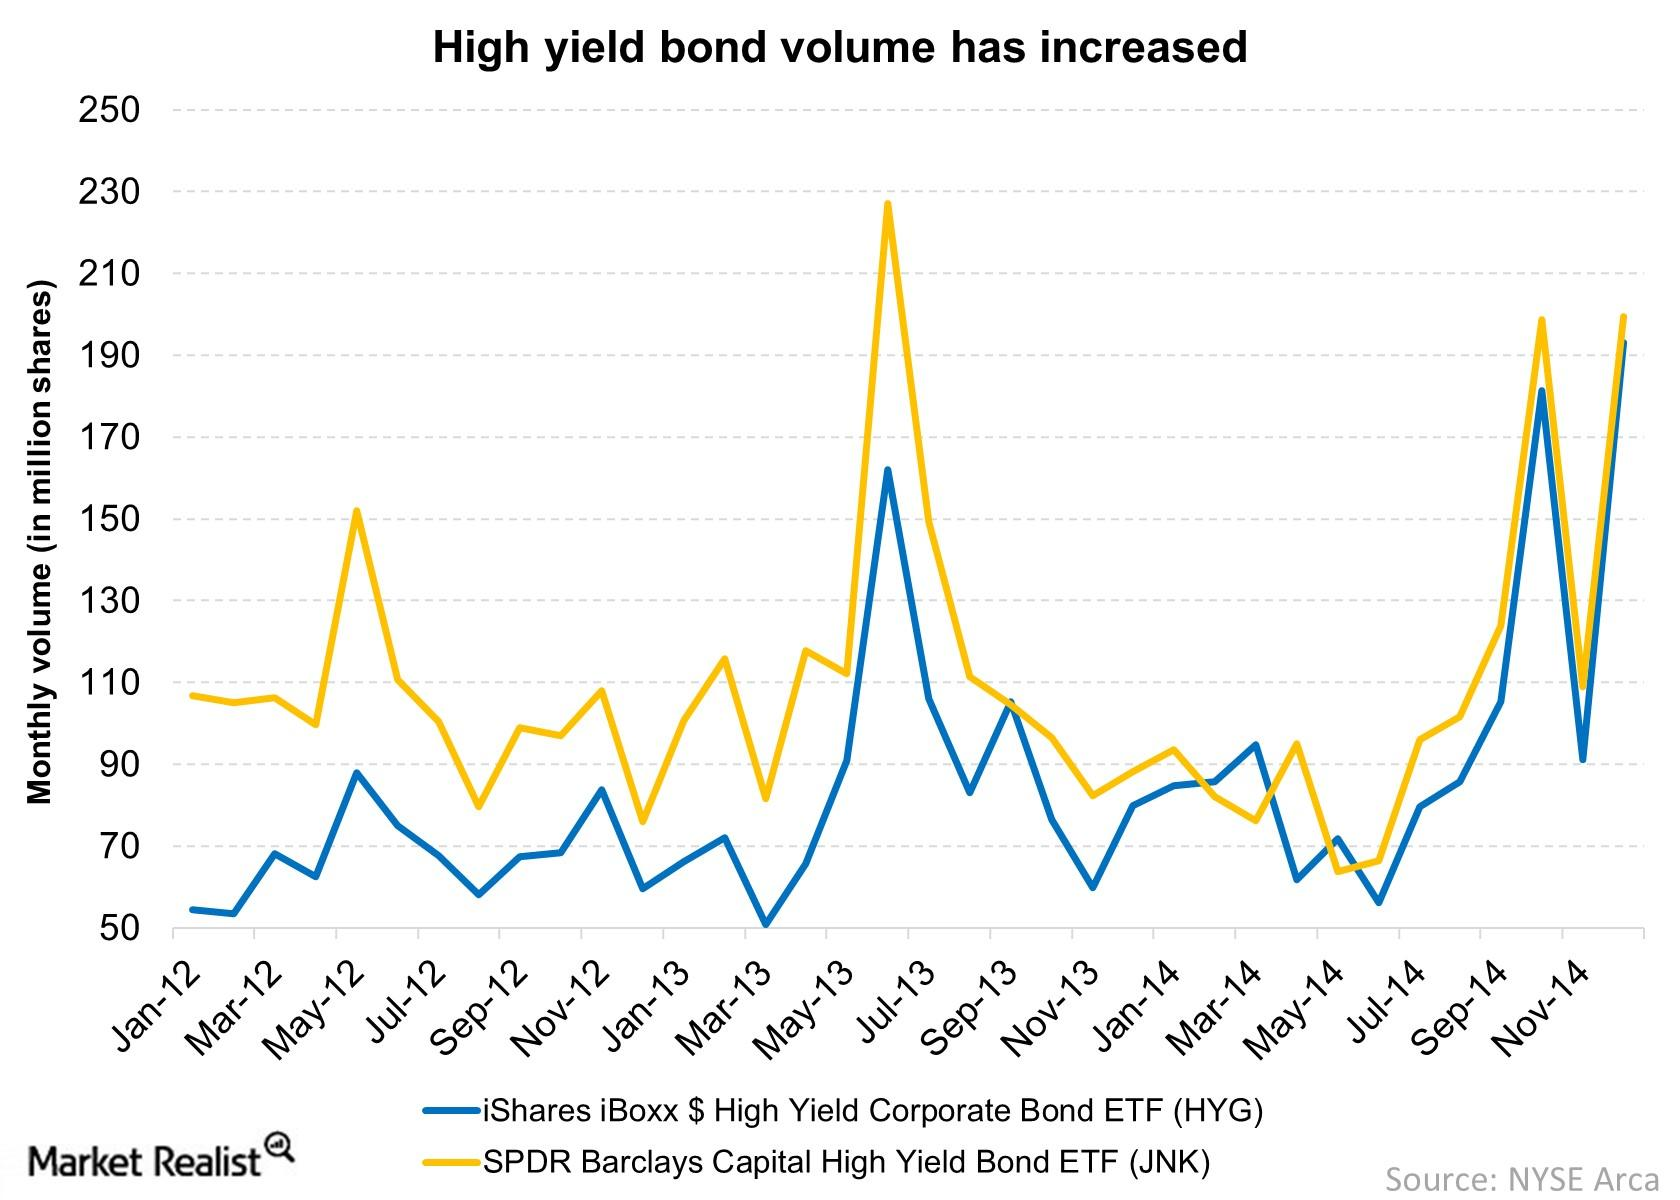 High yield bond funds are quite liquid